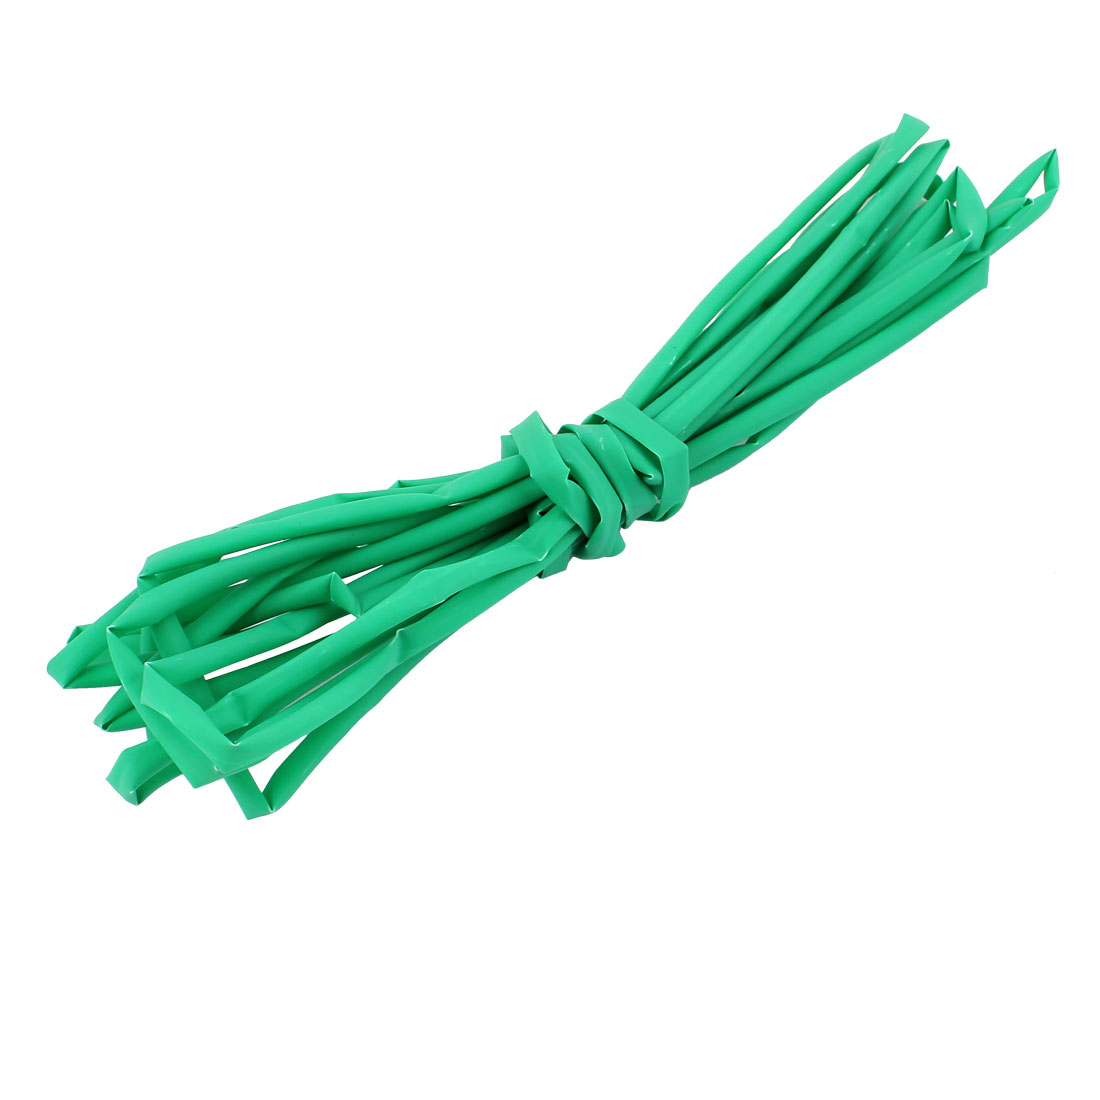 4M Length 4.5mm Dia Polyolefin Heat Shrinkable Tube Sleeving Green